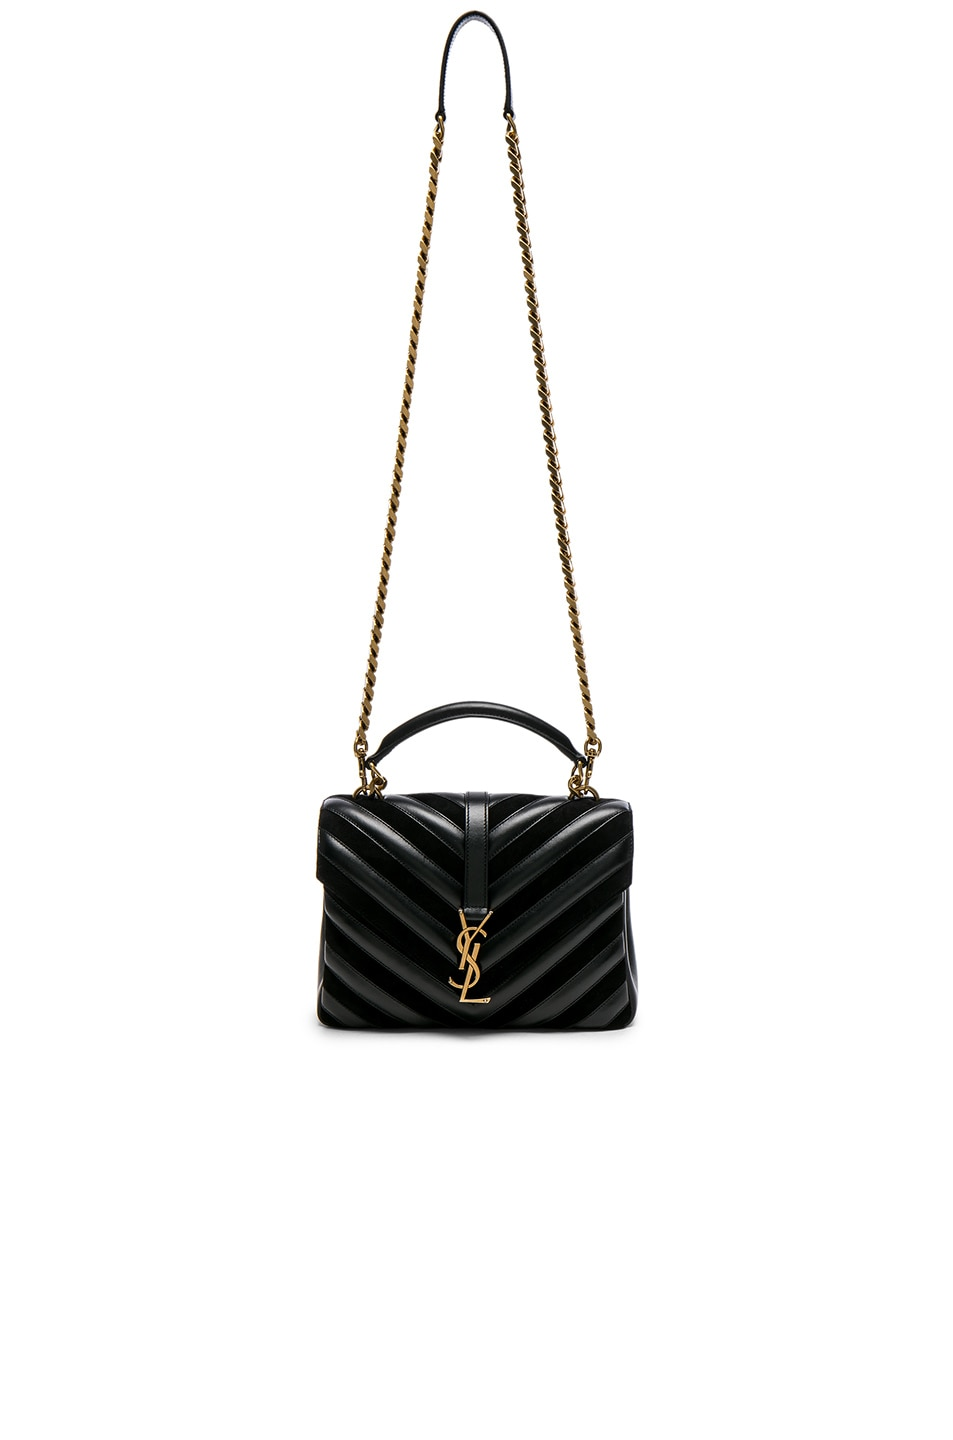 Image 5 of Saint Laurent Medium Leather   Suede Patchwork Monogramme College  Bag in Black 3139c28f67ce9